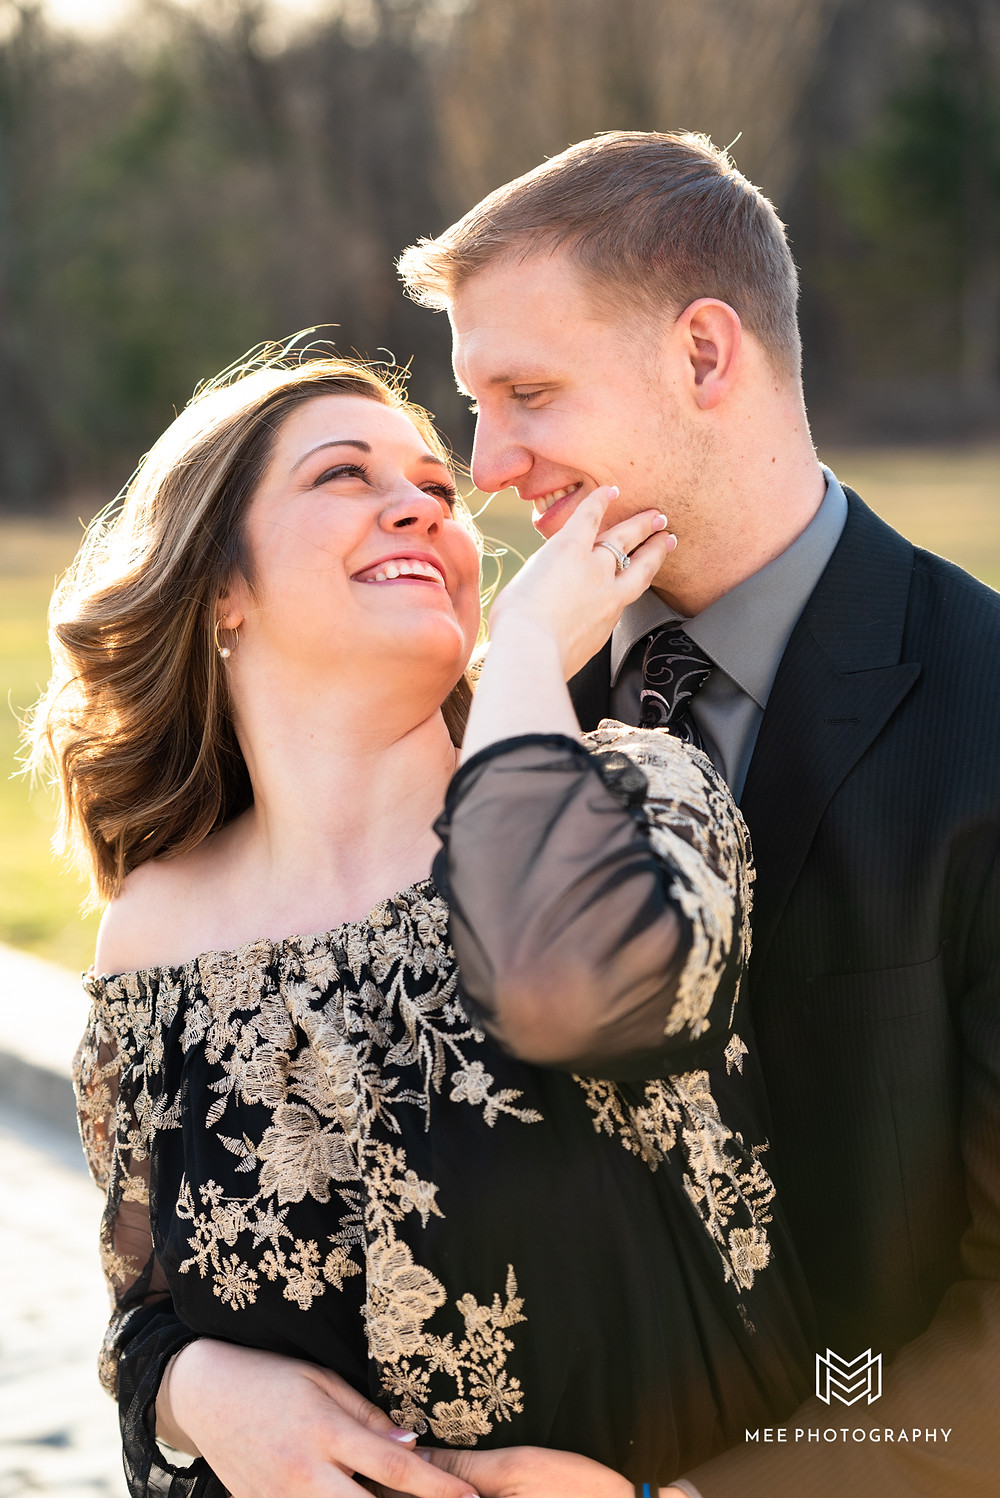 Pittsburgh engagement photography locations; hartwood acres